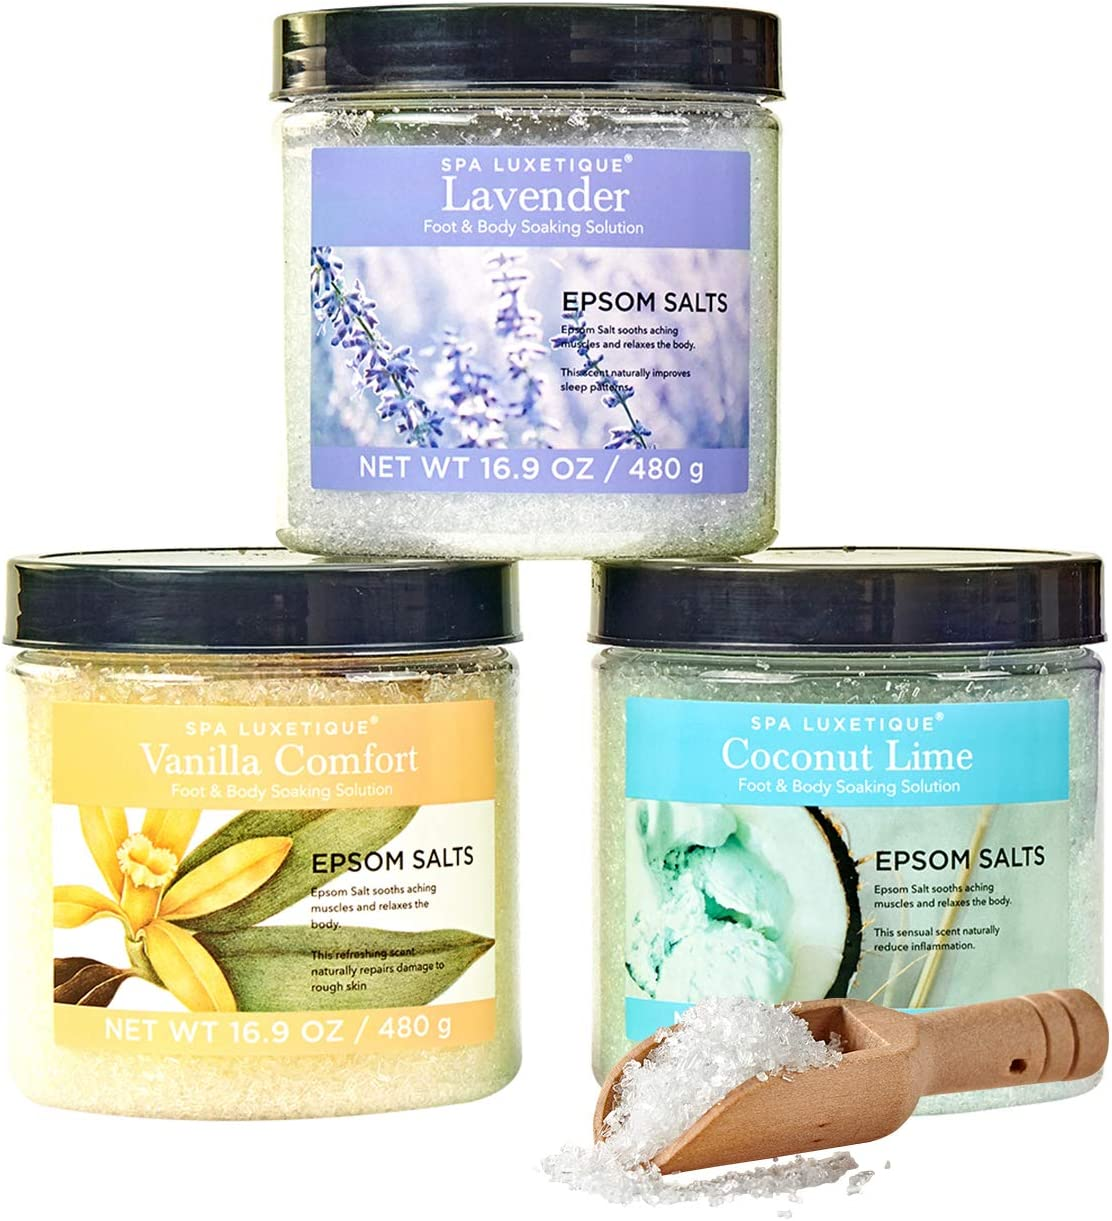 Spa Luxetique Epsom Salt Soaking Solution, Bath Salts for Muscle Soreness and Foot Soaking Solution. Bath Salt Gift Set in Lavender, Coconut, Vanilla Scent with Wooden Scoop. 3pack,16.9oz Each.